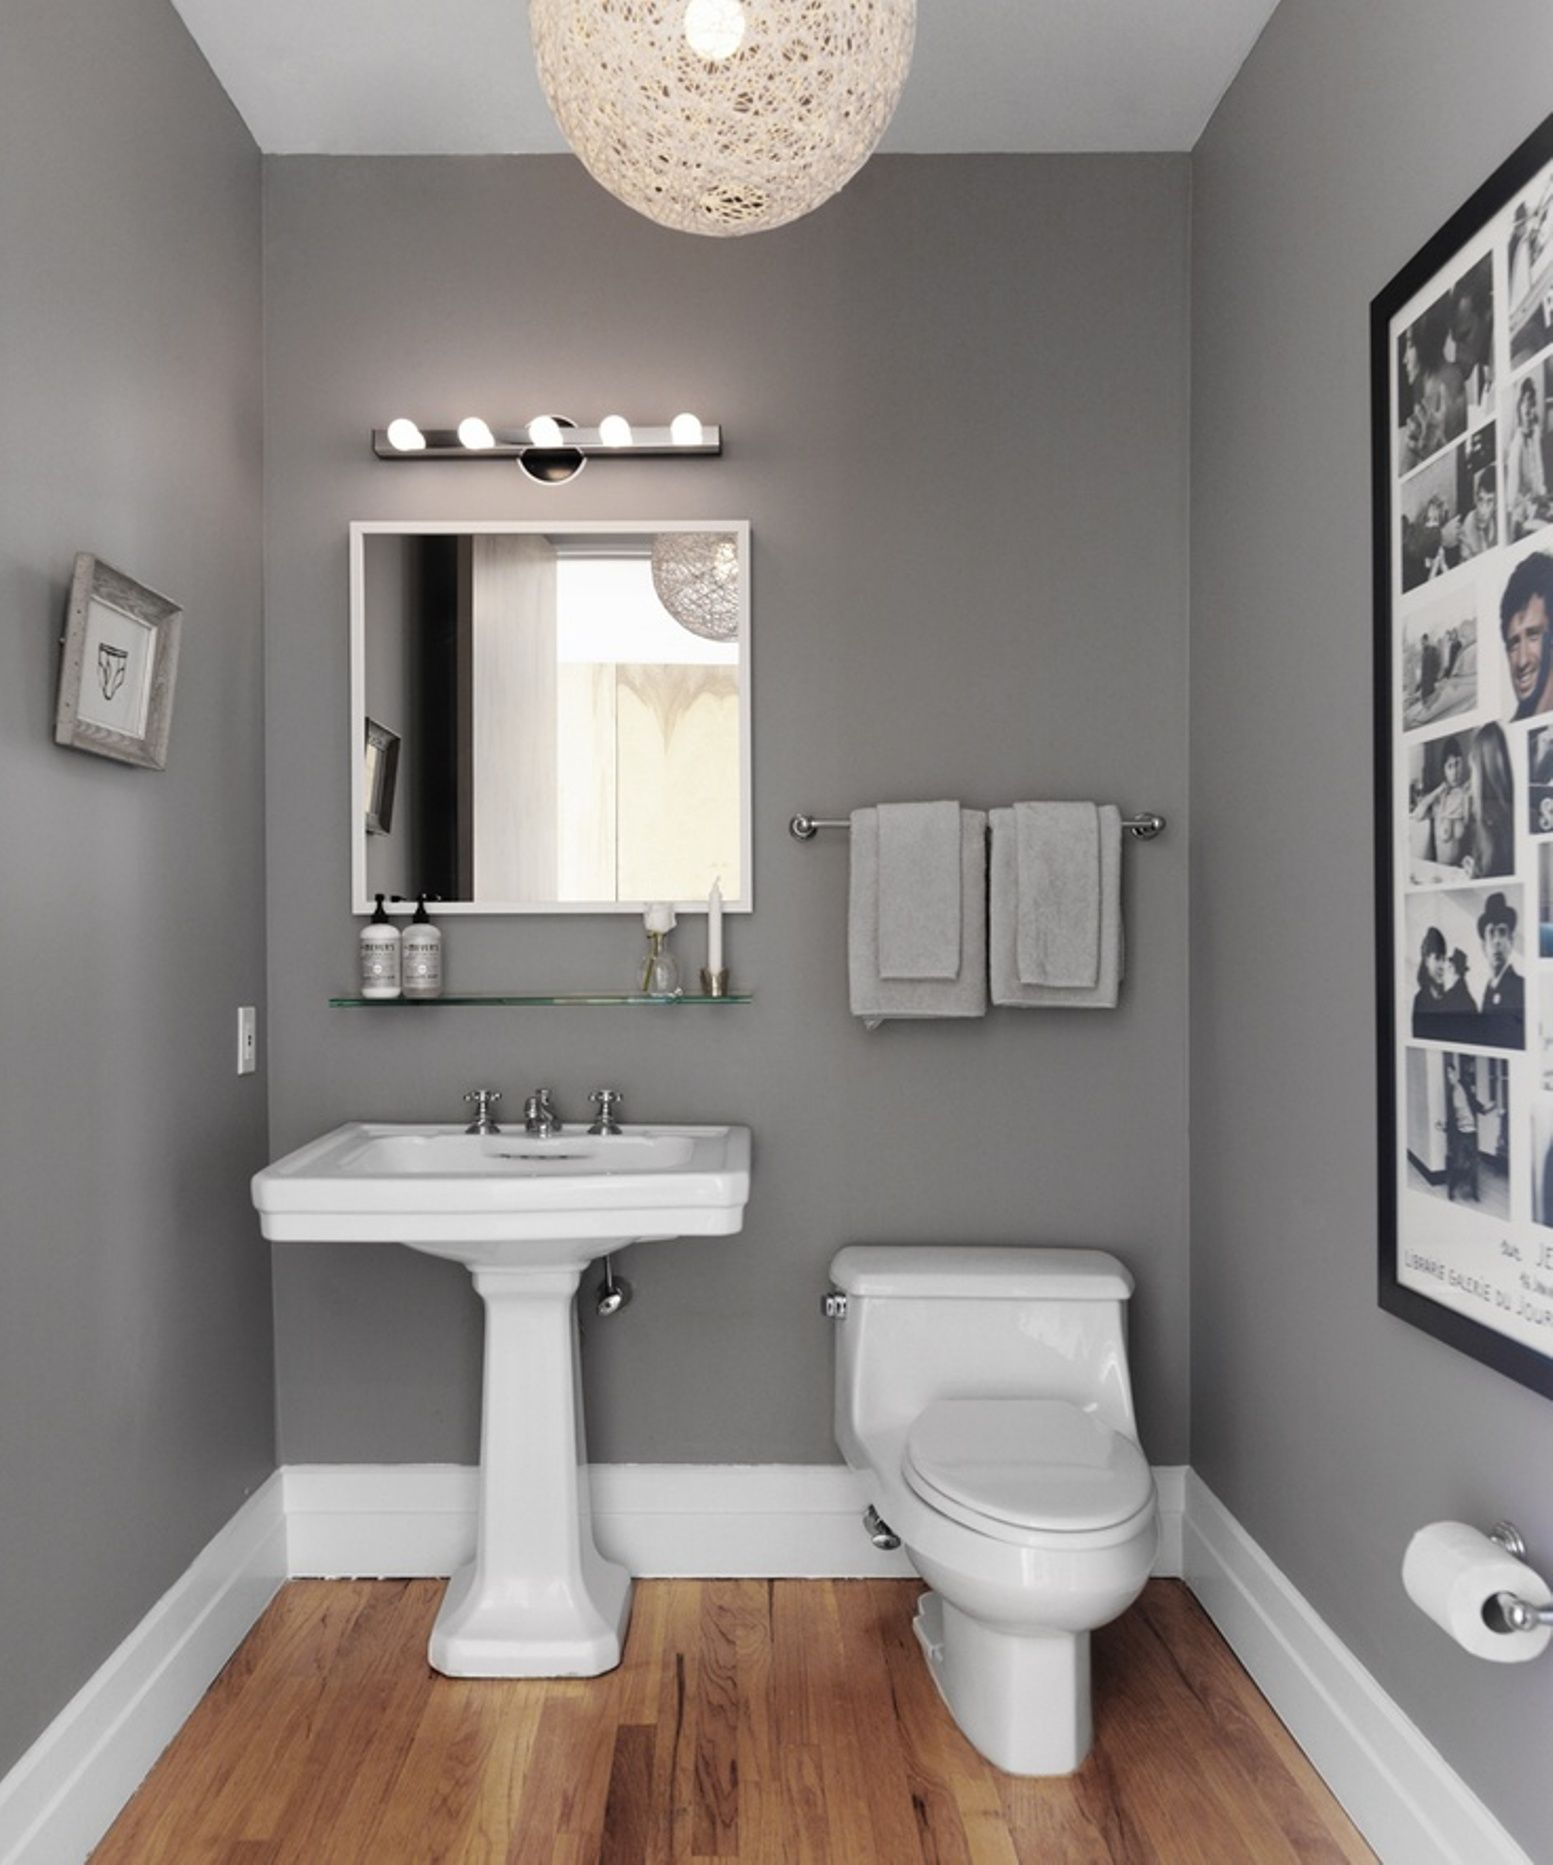 Narrow Grey Bathroom Ideas With White Bath Fixtures Grey Bathroom Ideas Inspiration Bathroom Wall Colors Bathroom Color Bathrooms Remodel